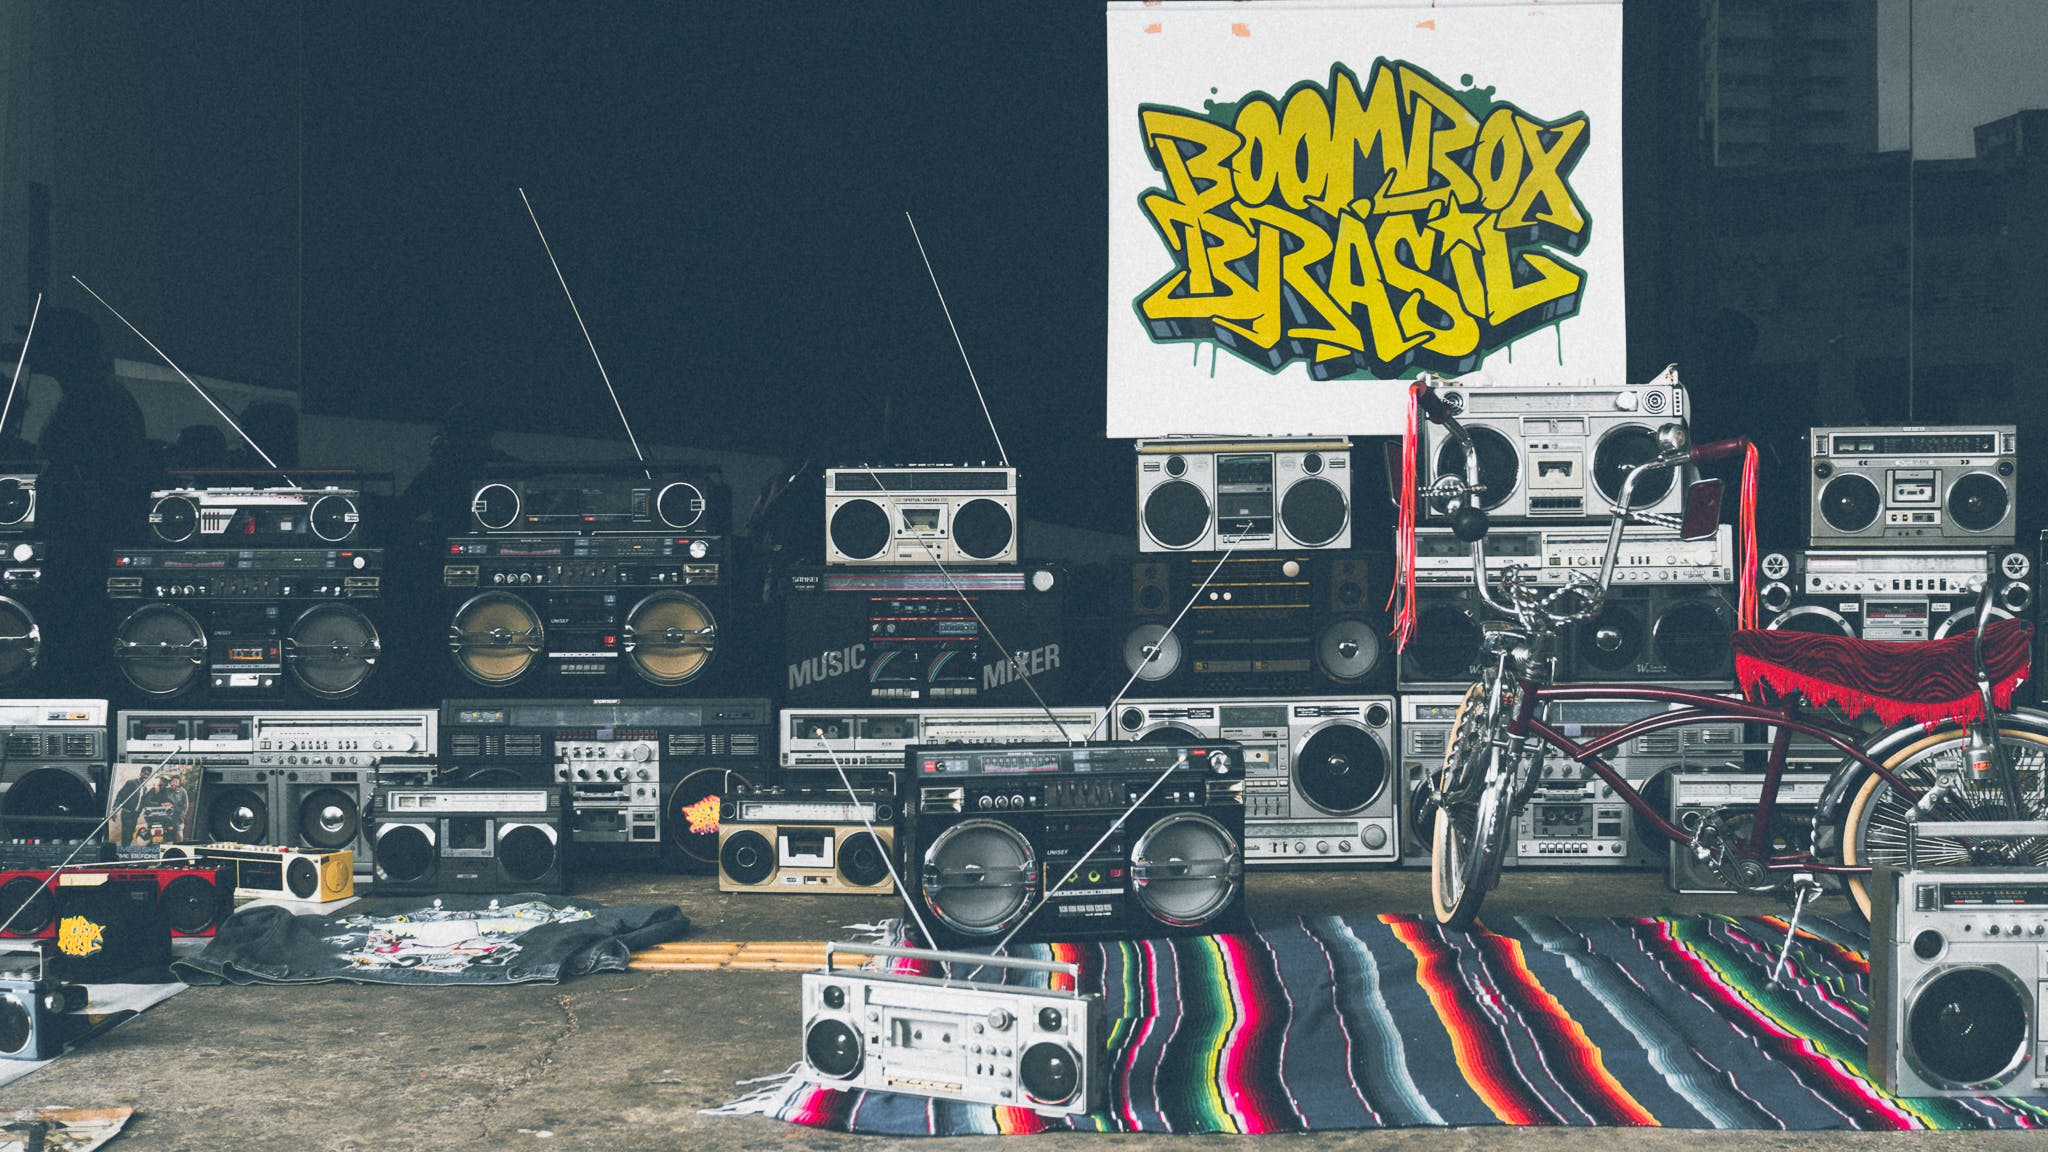 Free stock photo of graffiti, technology, music, wall art